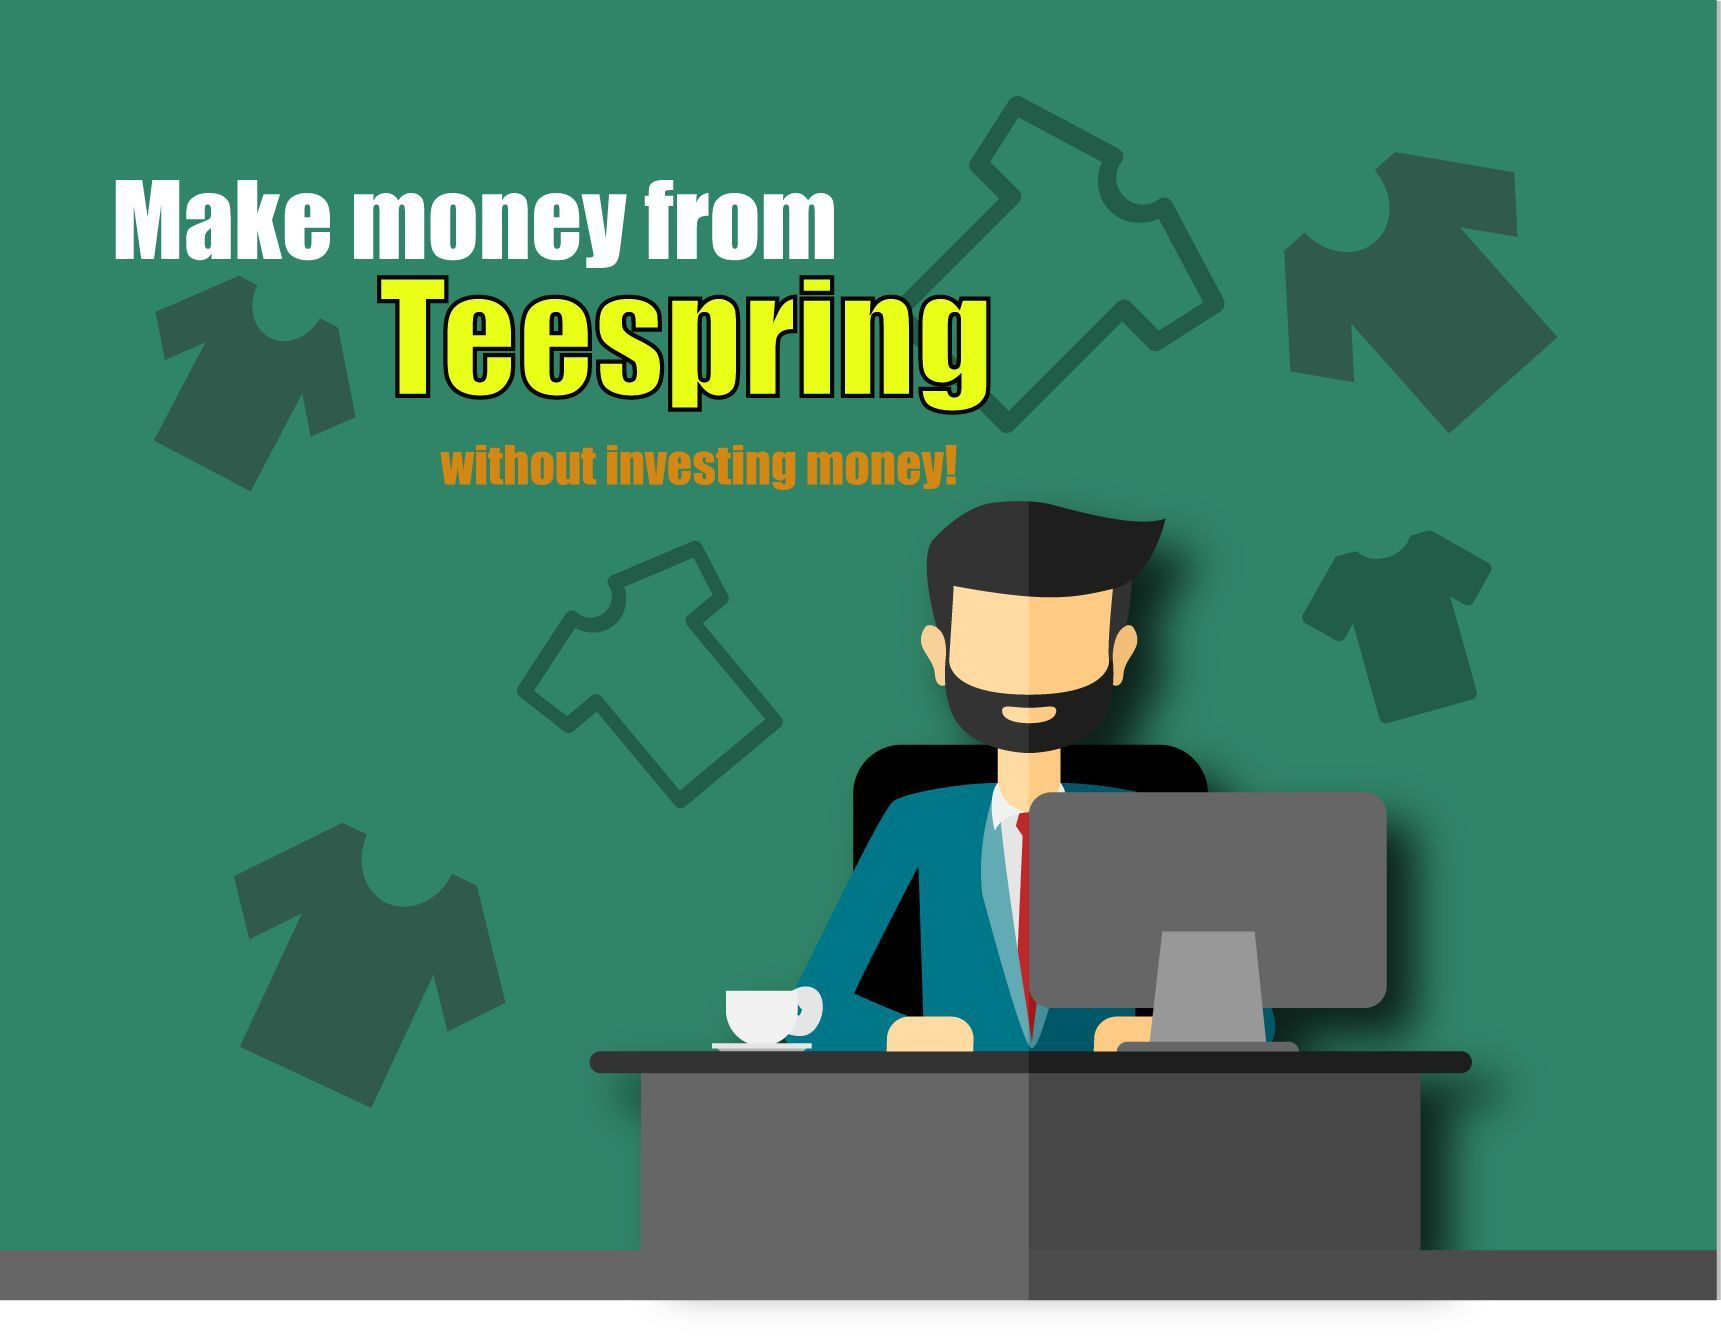 Failed In Making Money From Teespring Even After Running Ads, Then Read  This Post To Learn How You Can Make Money From Teespring Without Investing  Money